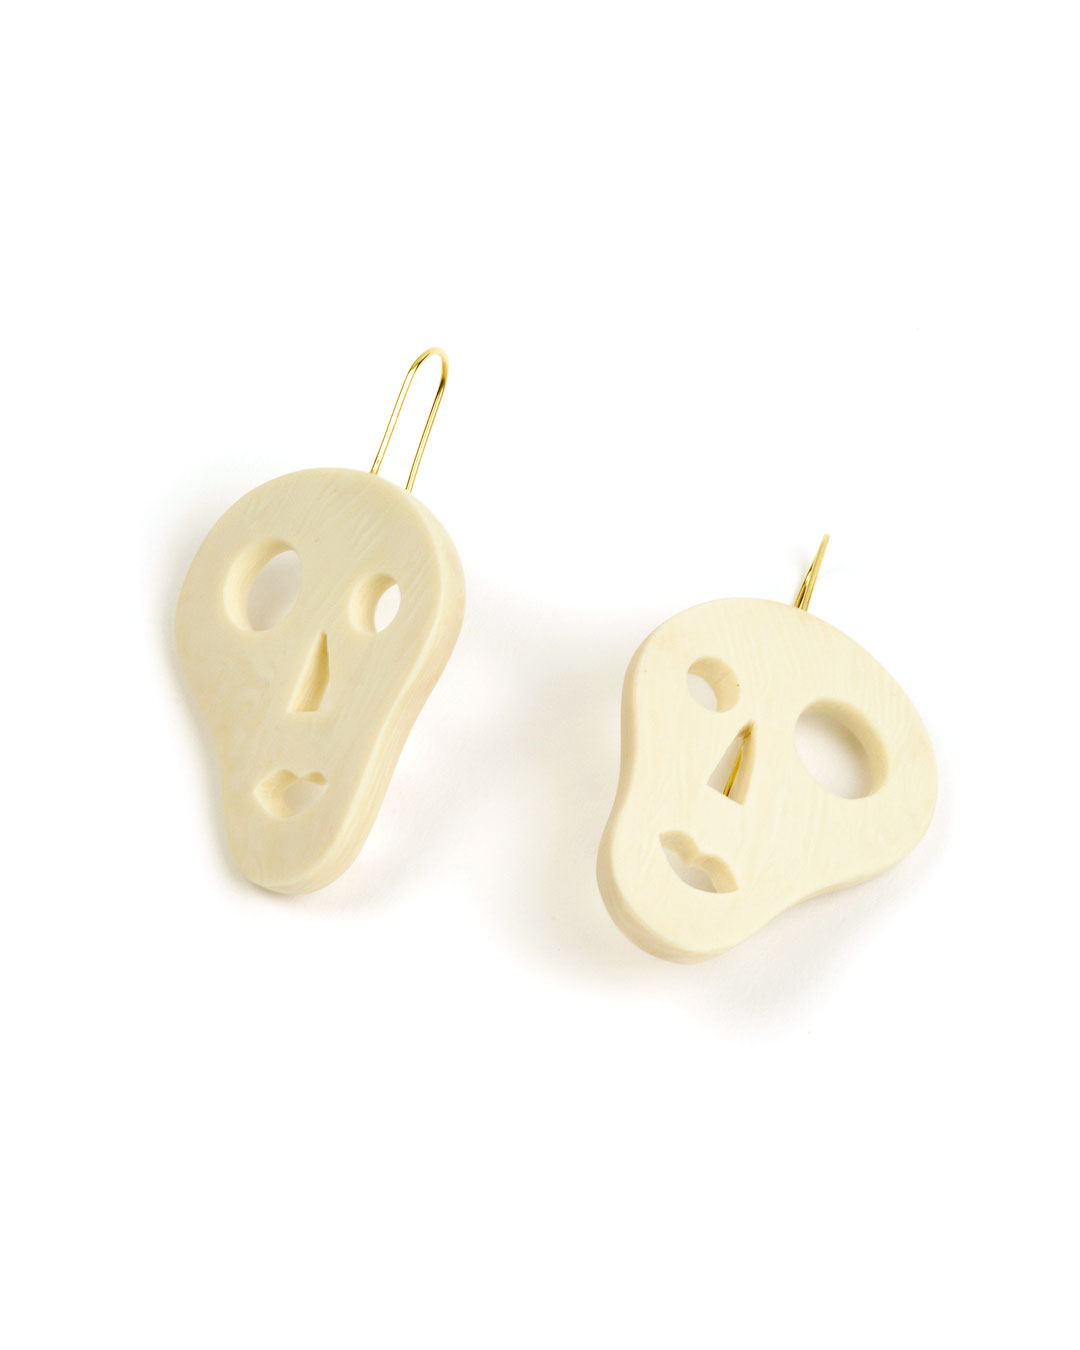 Julia Walter, Little Skulls, 2019, earrings; Galalith, 14ct gold, 35 x 40 x 5 mm, €670